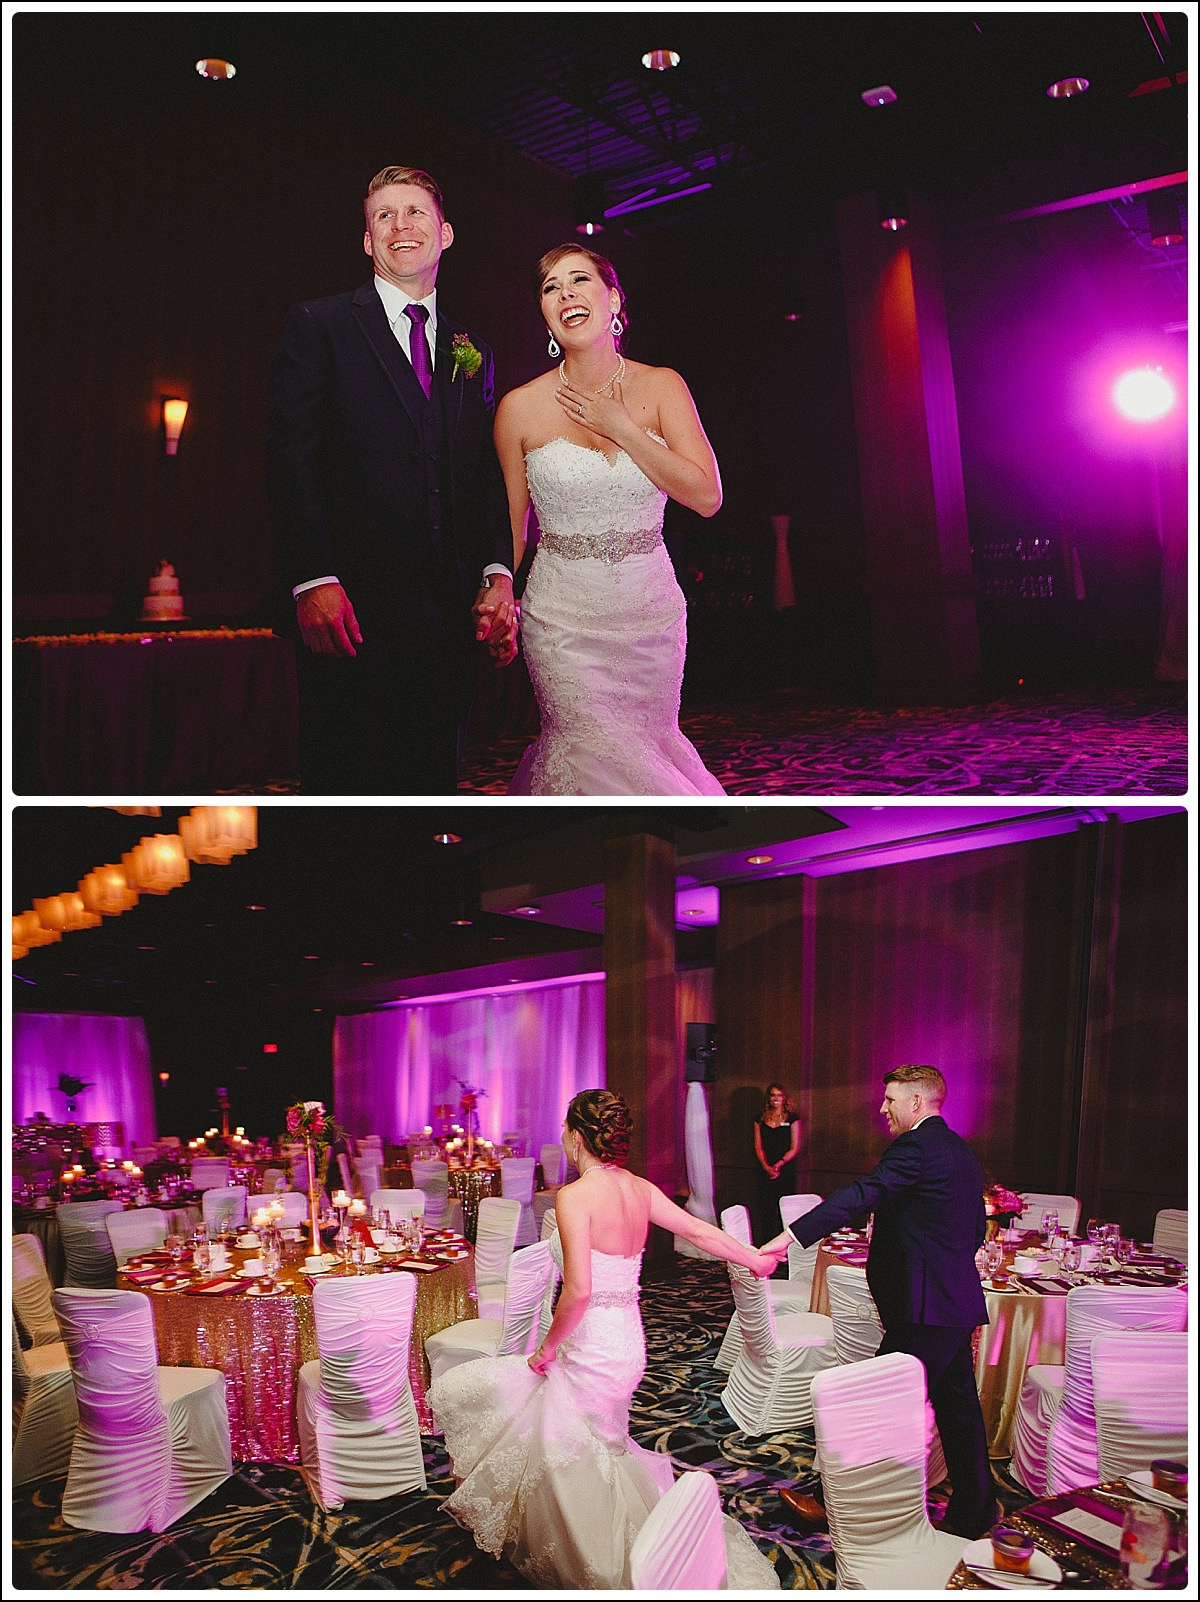 Calgary_Wedding_Photographers_-_Shannon_Teddy_0064.jpg